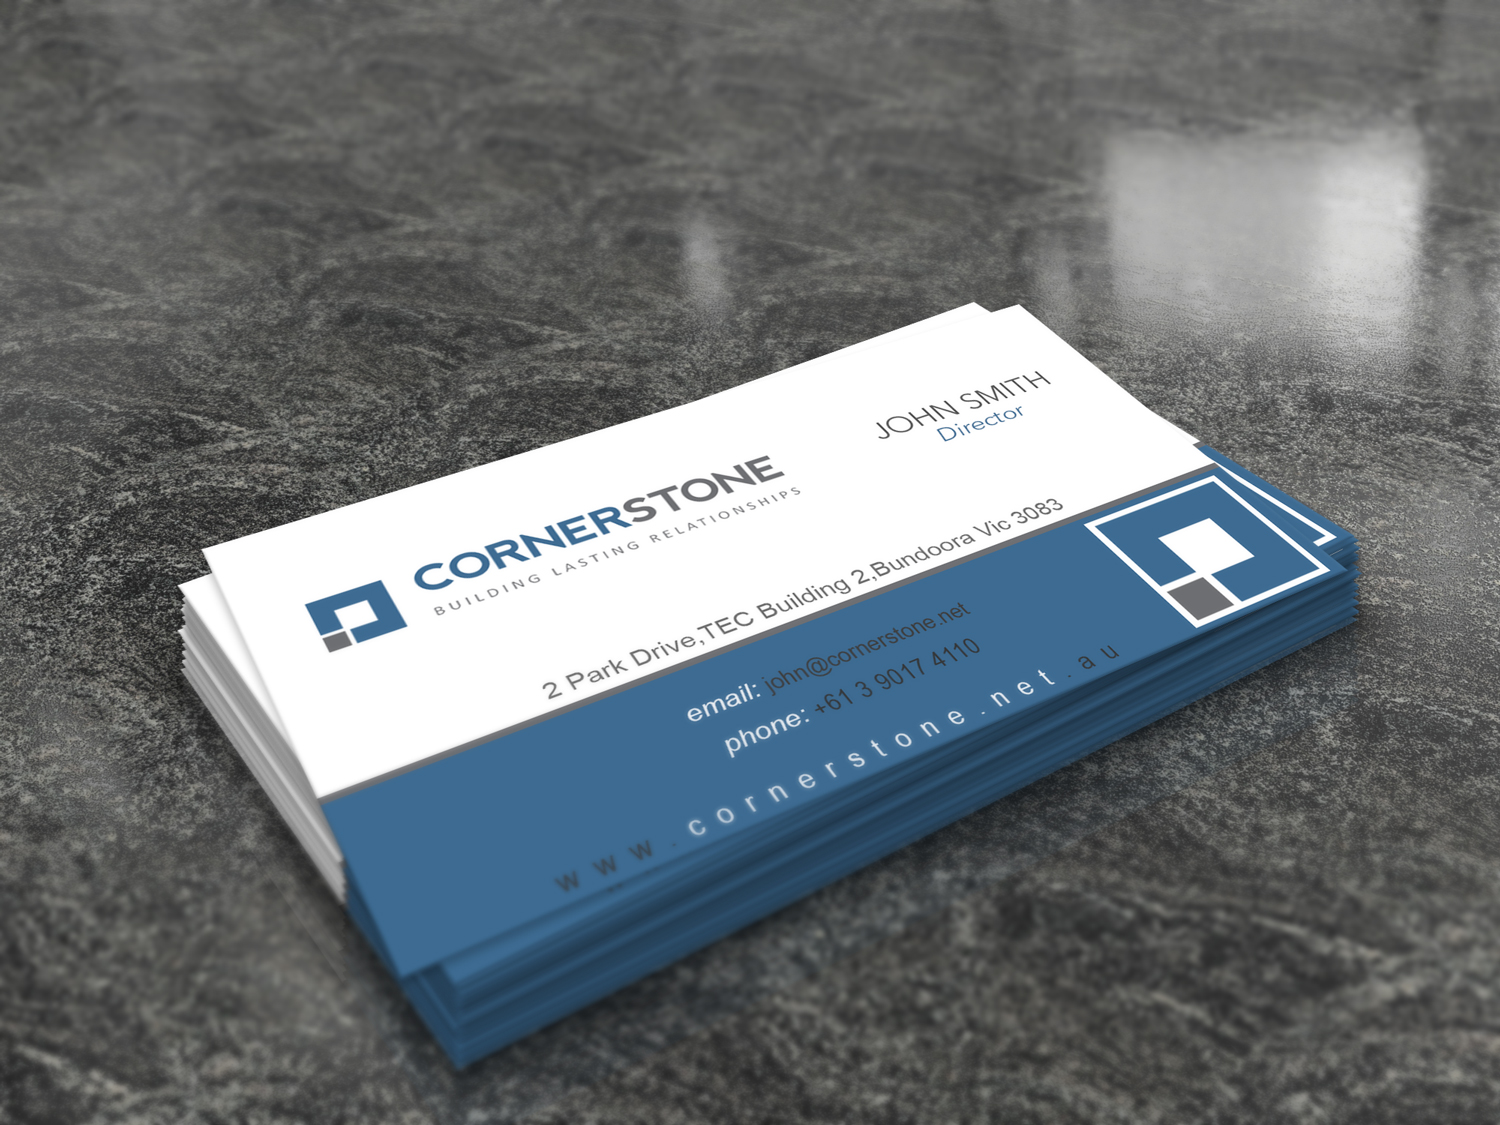 Software Business Card Design for Cornerstone Computing by Bran ...